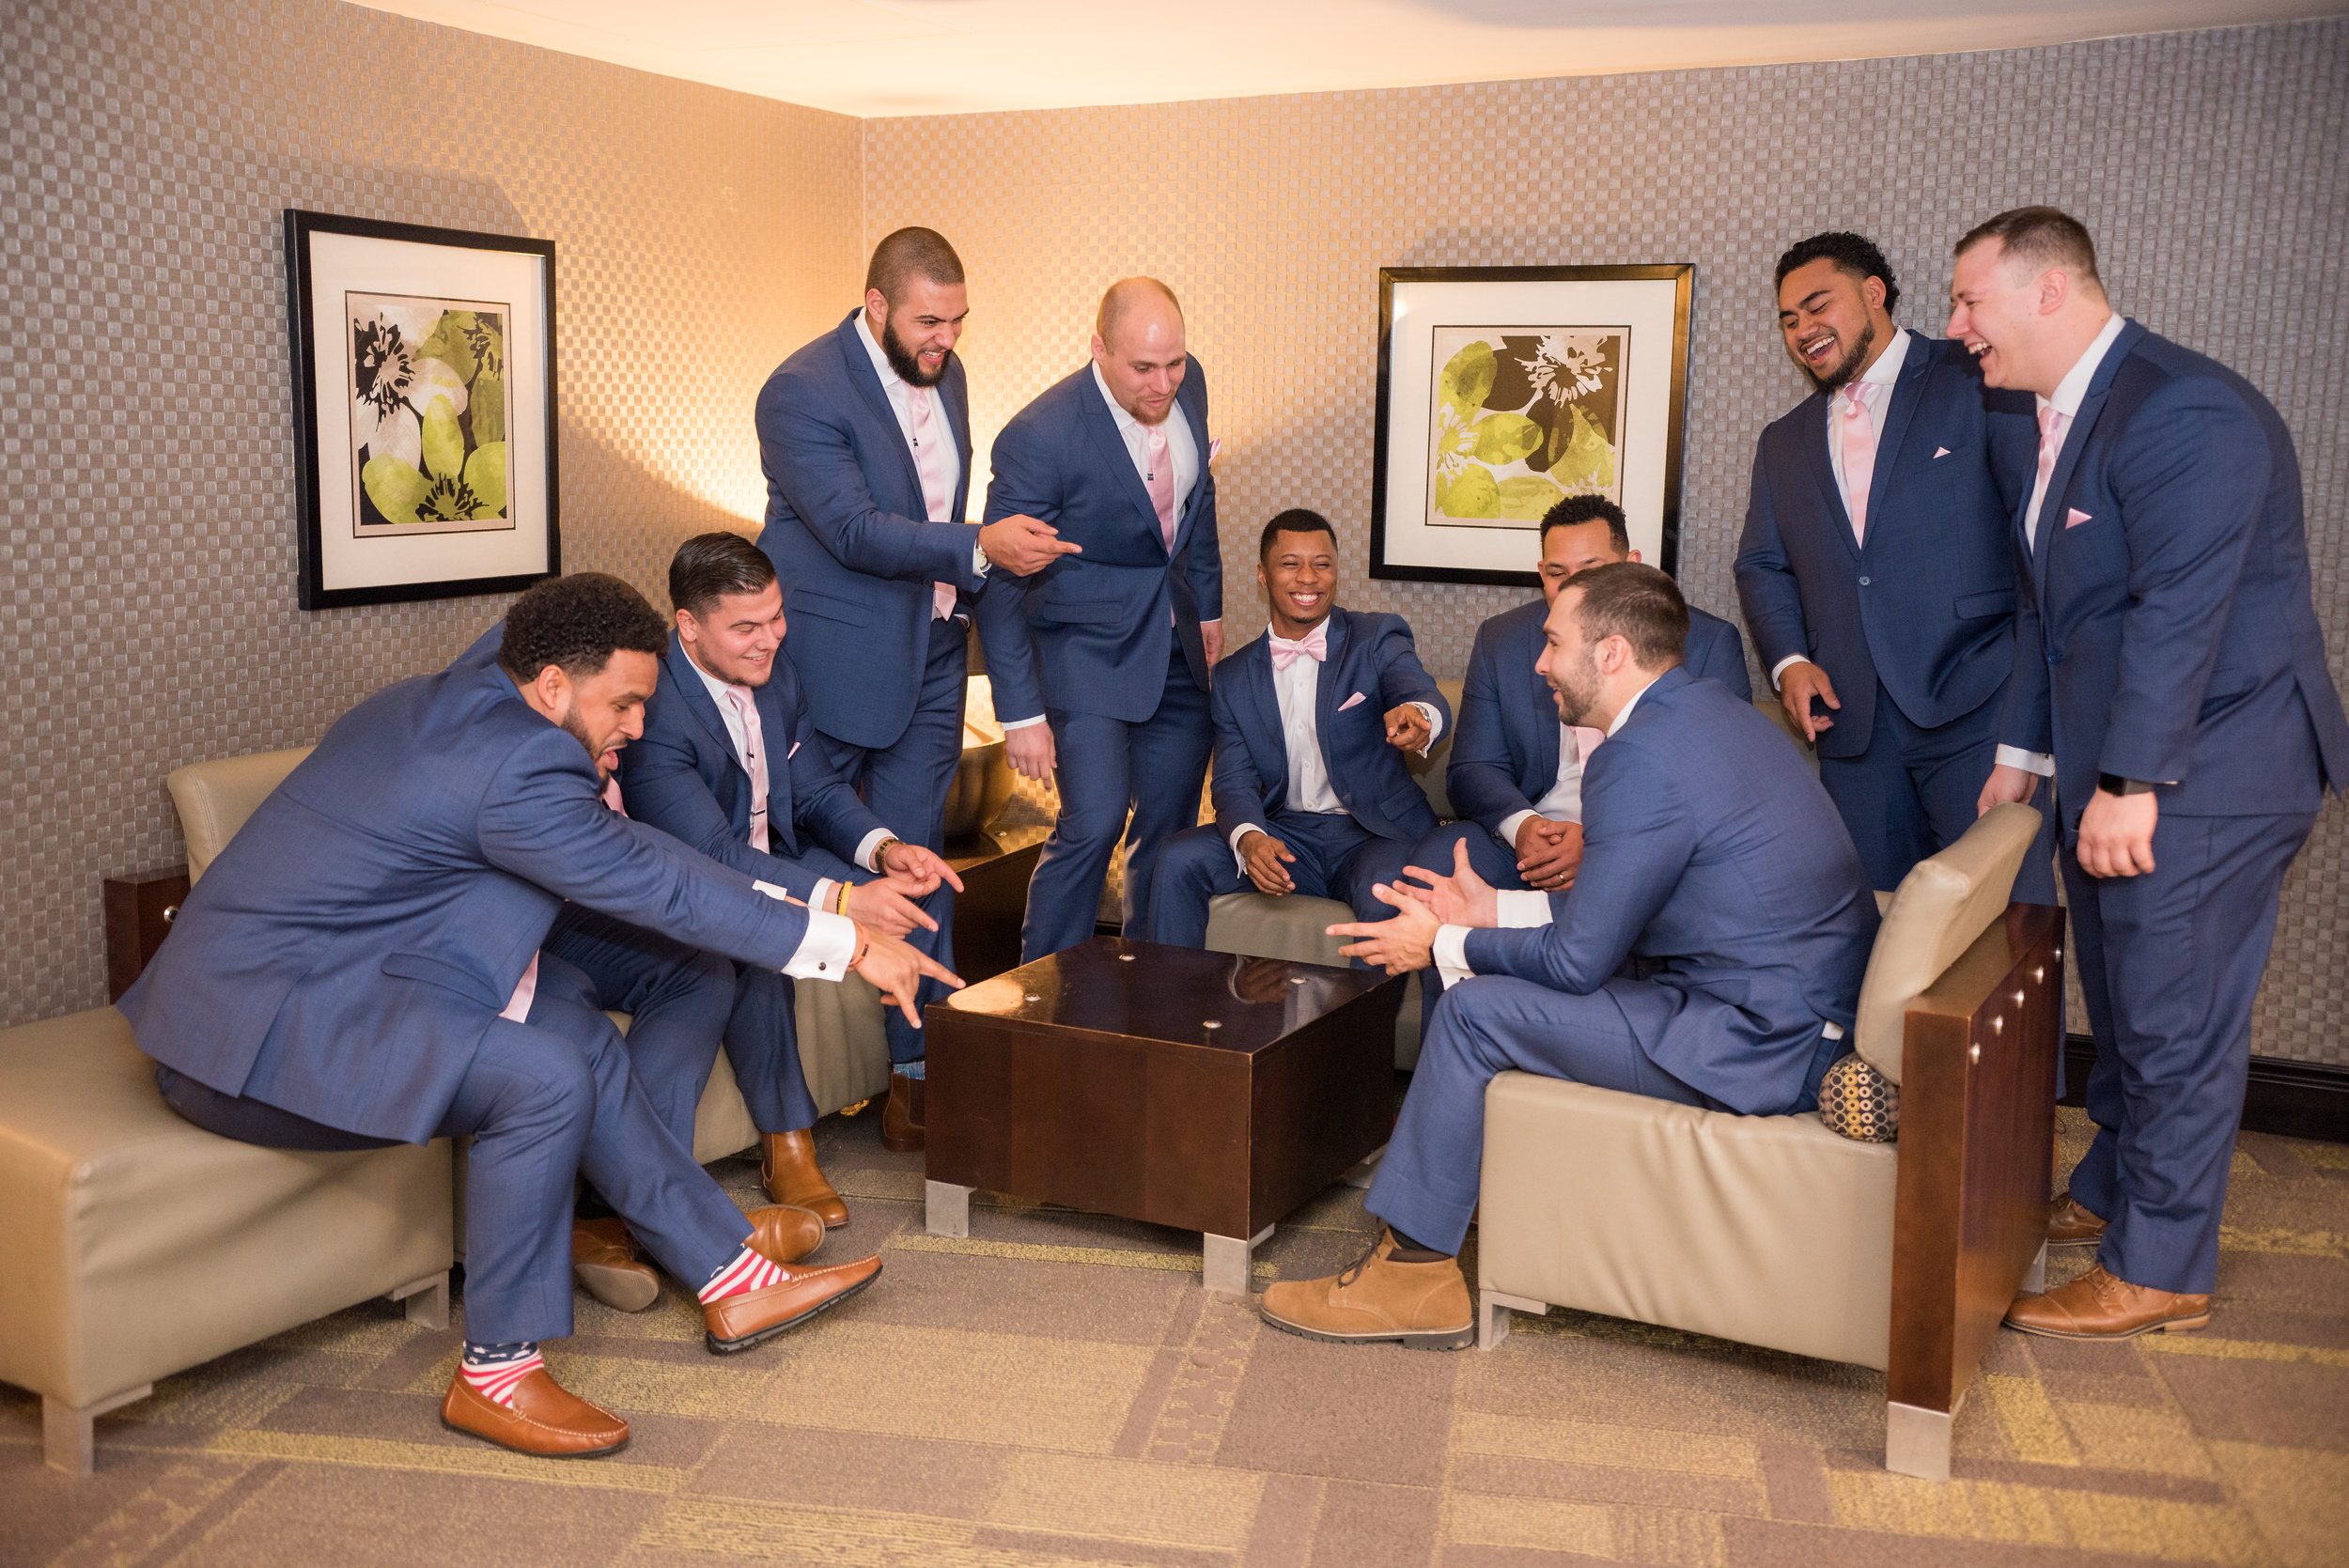 groomsmen-laughing-getting-ready-wedding-day.jpg